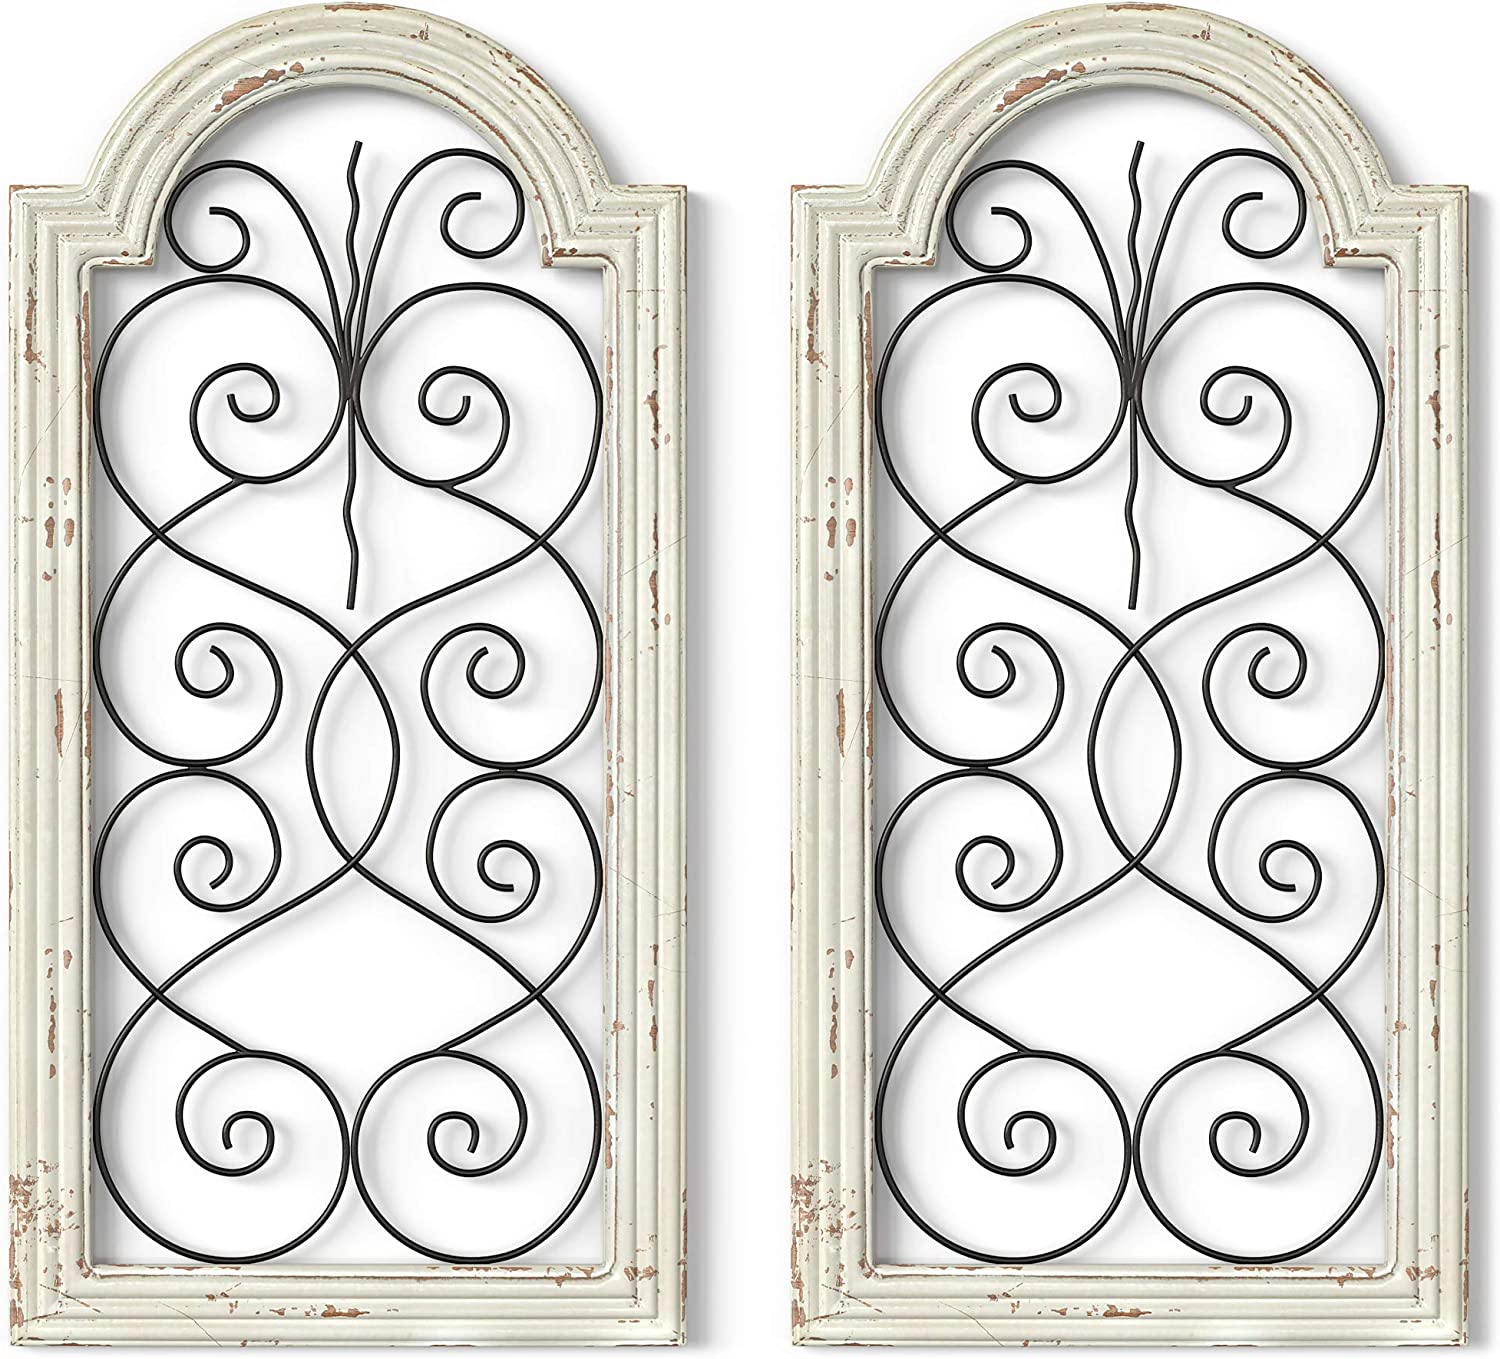 Barnyard Designs Rustic Wood and Metal Wall Decor, Large Decorative Wrought Iron Scroll Wall Art, Vintage Farmhouse Home Decor, 16